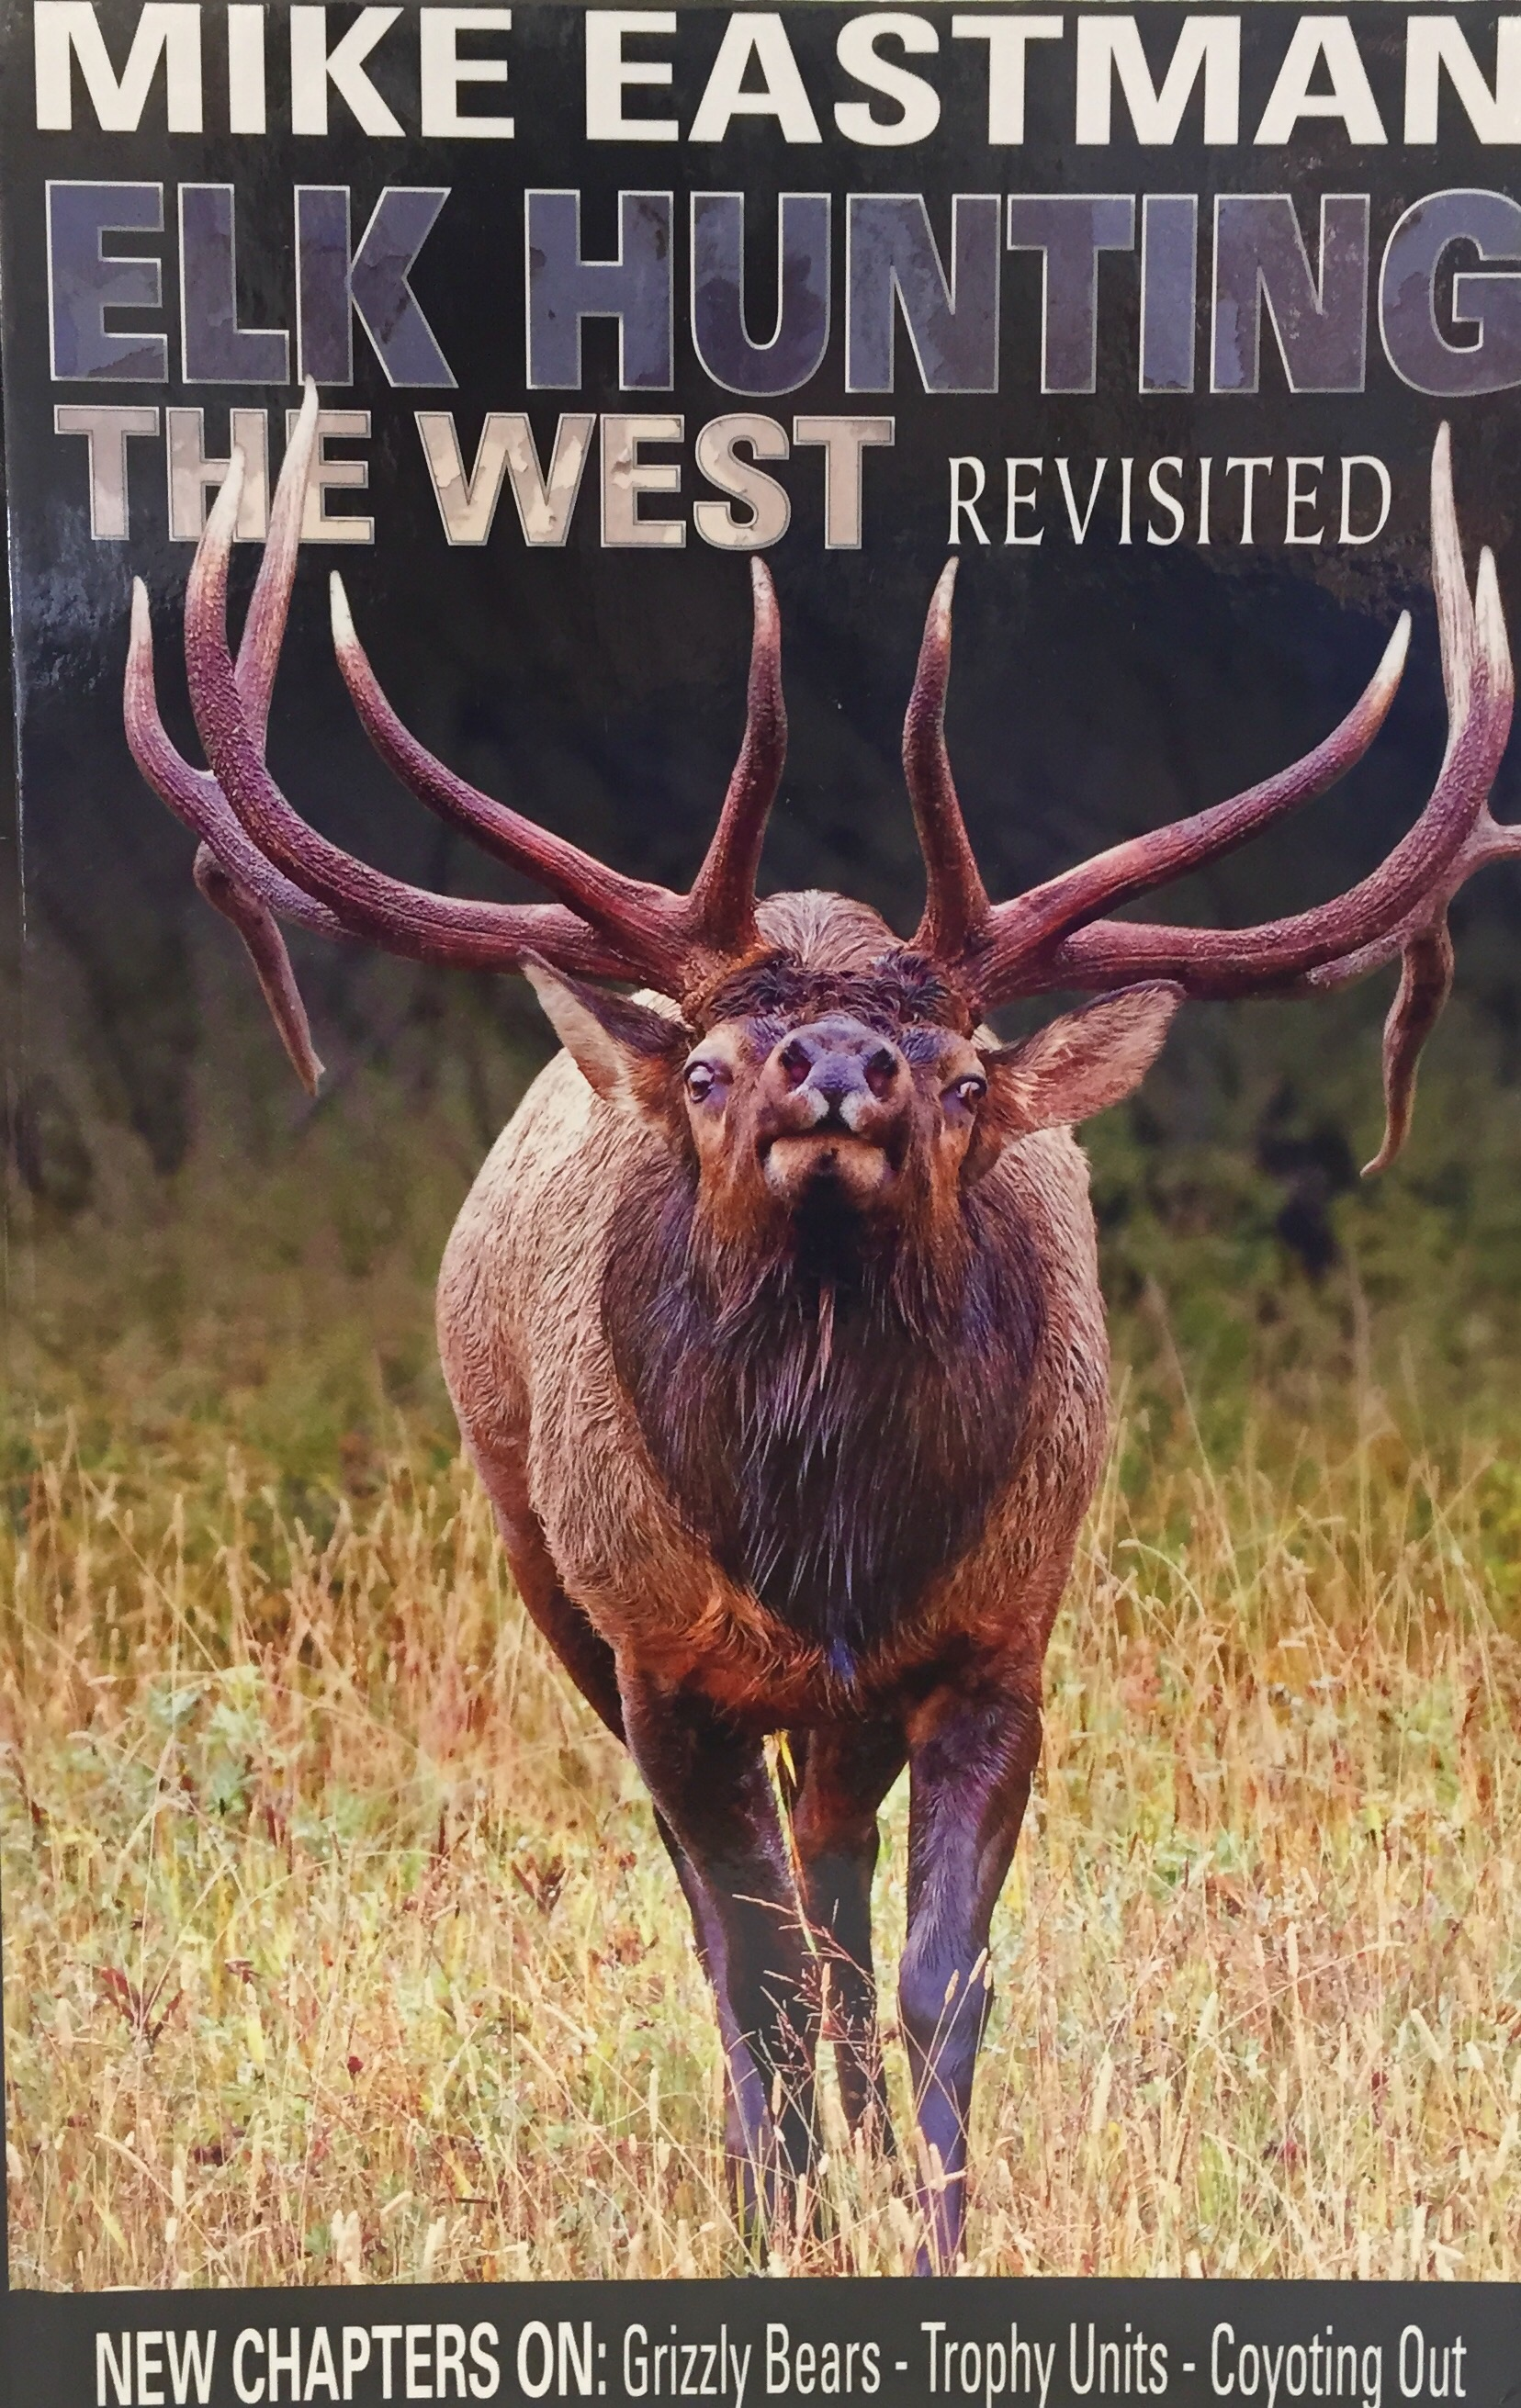 Elk Hunting the West Revisited by Eastman